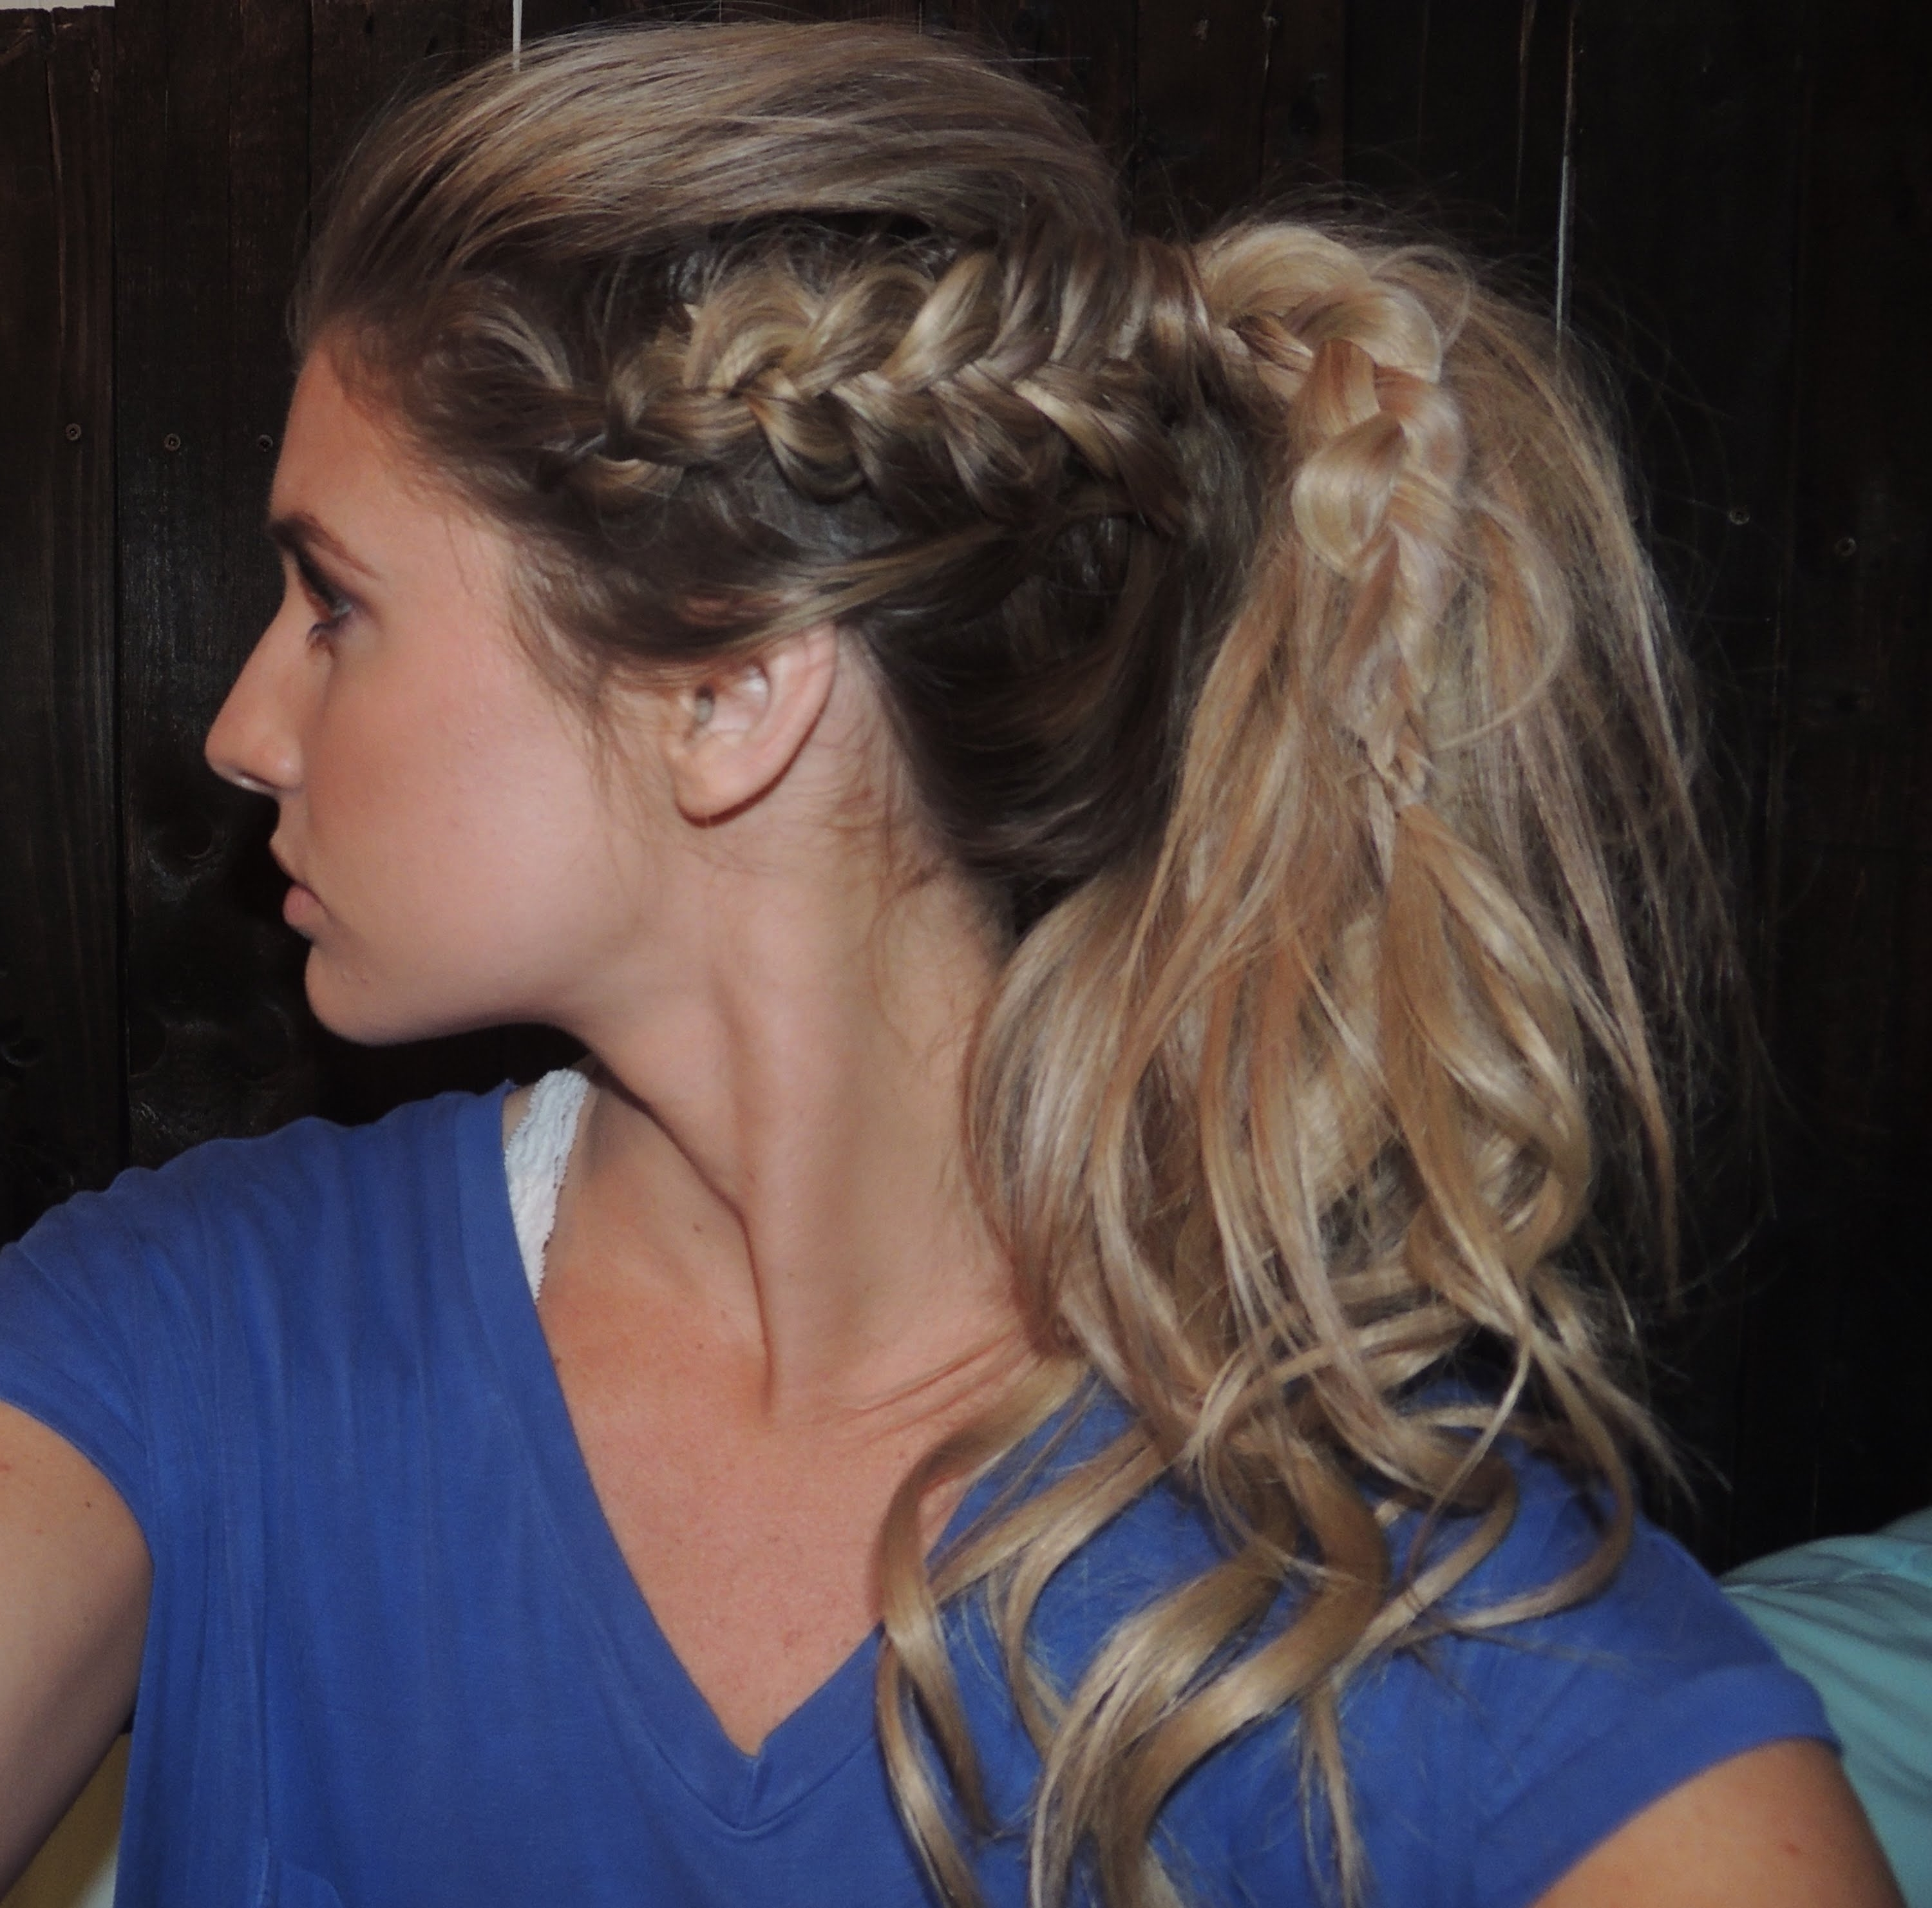 How To Tutorial On Side Dutch Braids To A Ponytail – Youtube Inside Most Current Messy Ponytail Hairstyles With Side Dutch Braid (View 12 of 20)